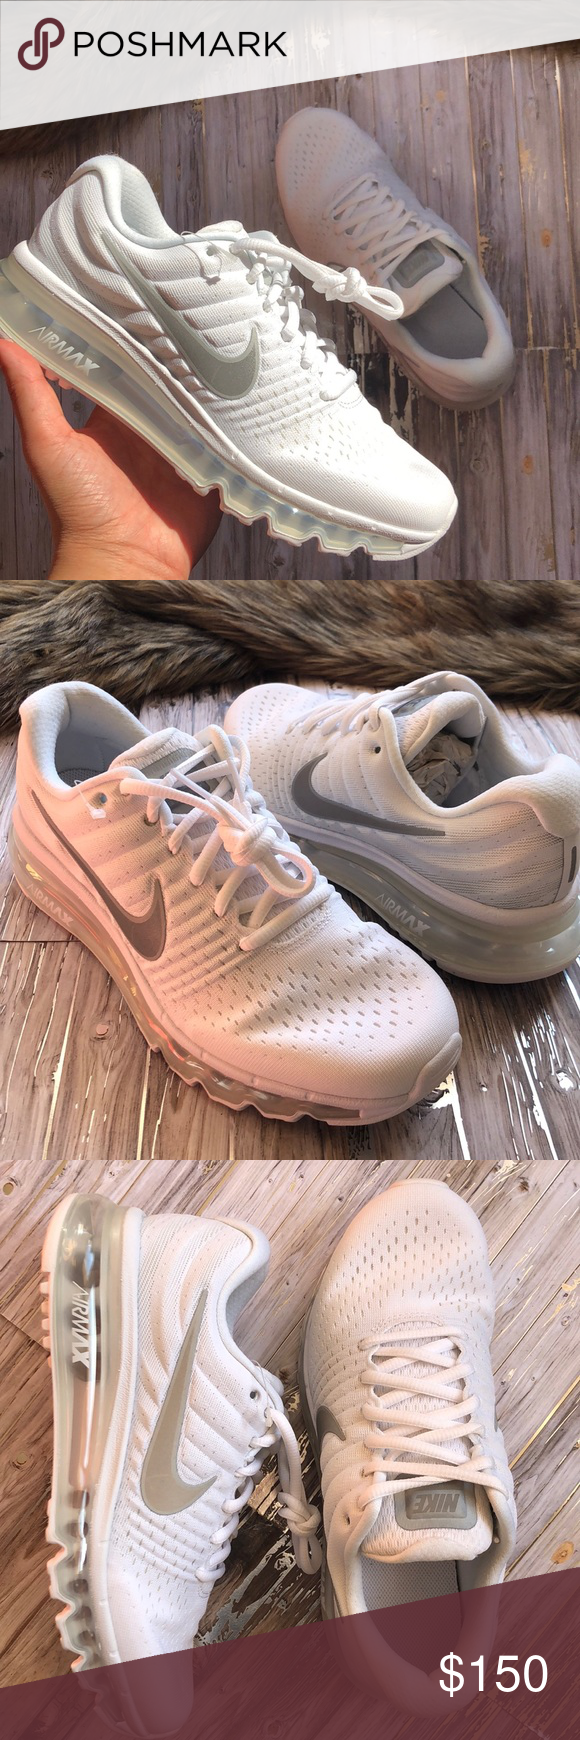 NIKE AIR MAX 2017! | Jeans and sneakers, Jeans wear, Boots and ...